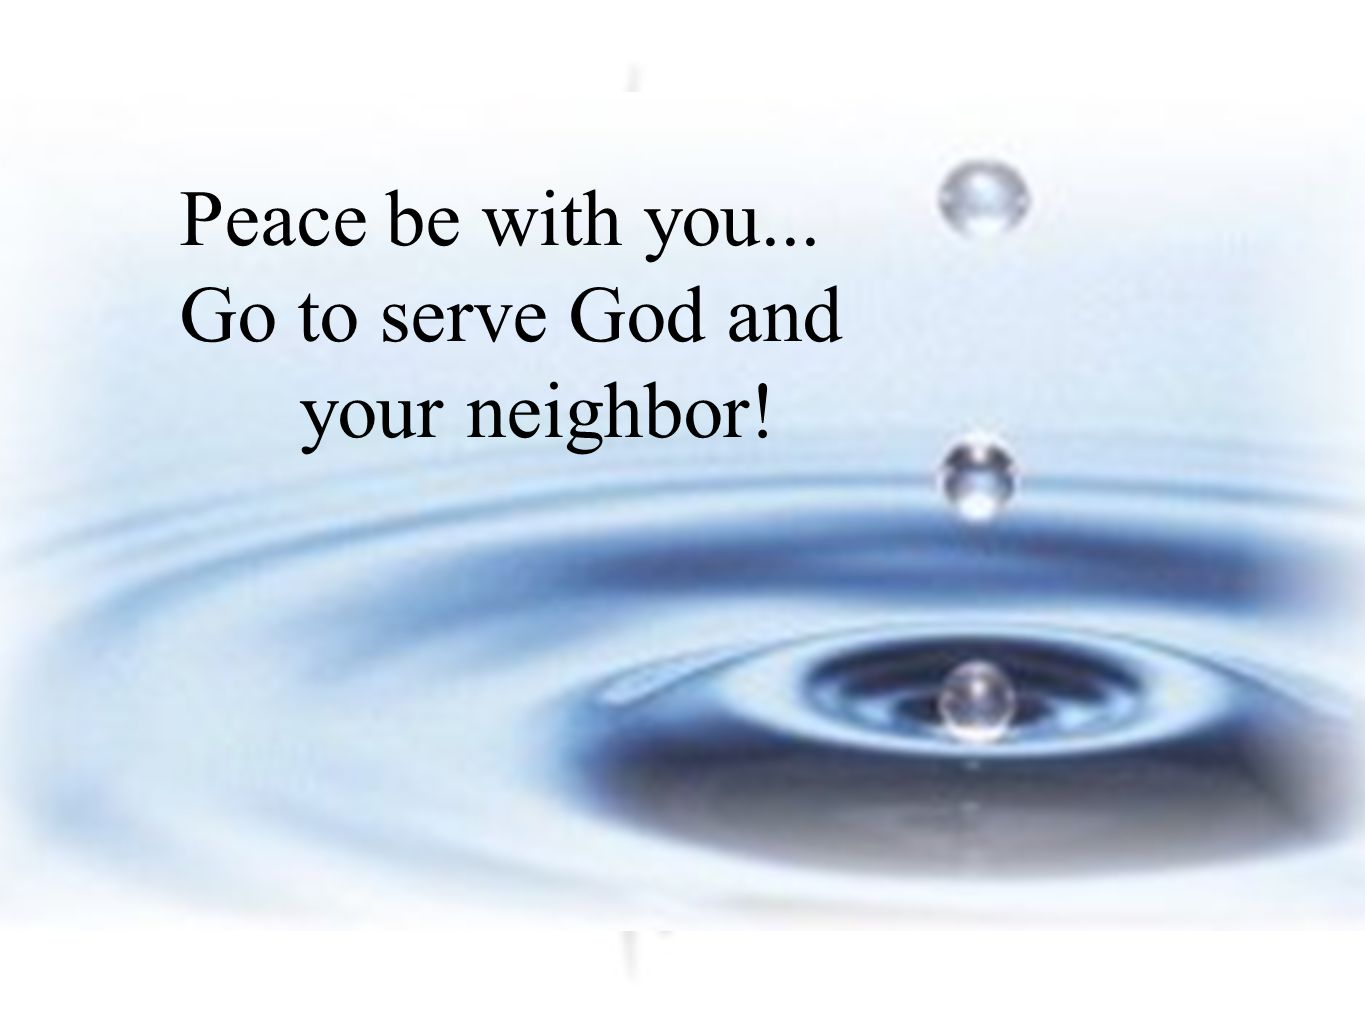 Peace be with you... Go to serve God and your neighbor!